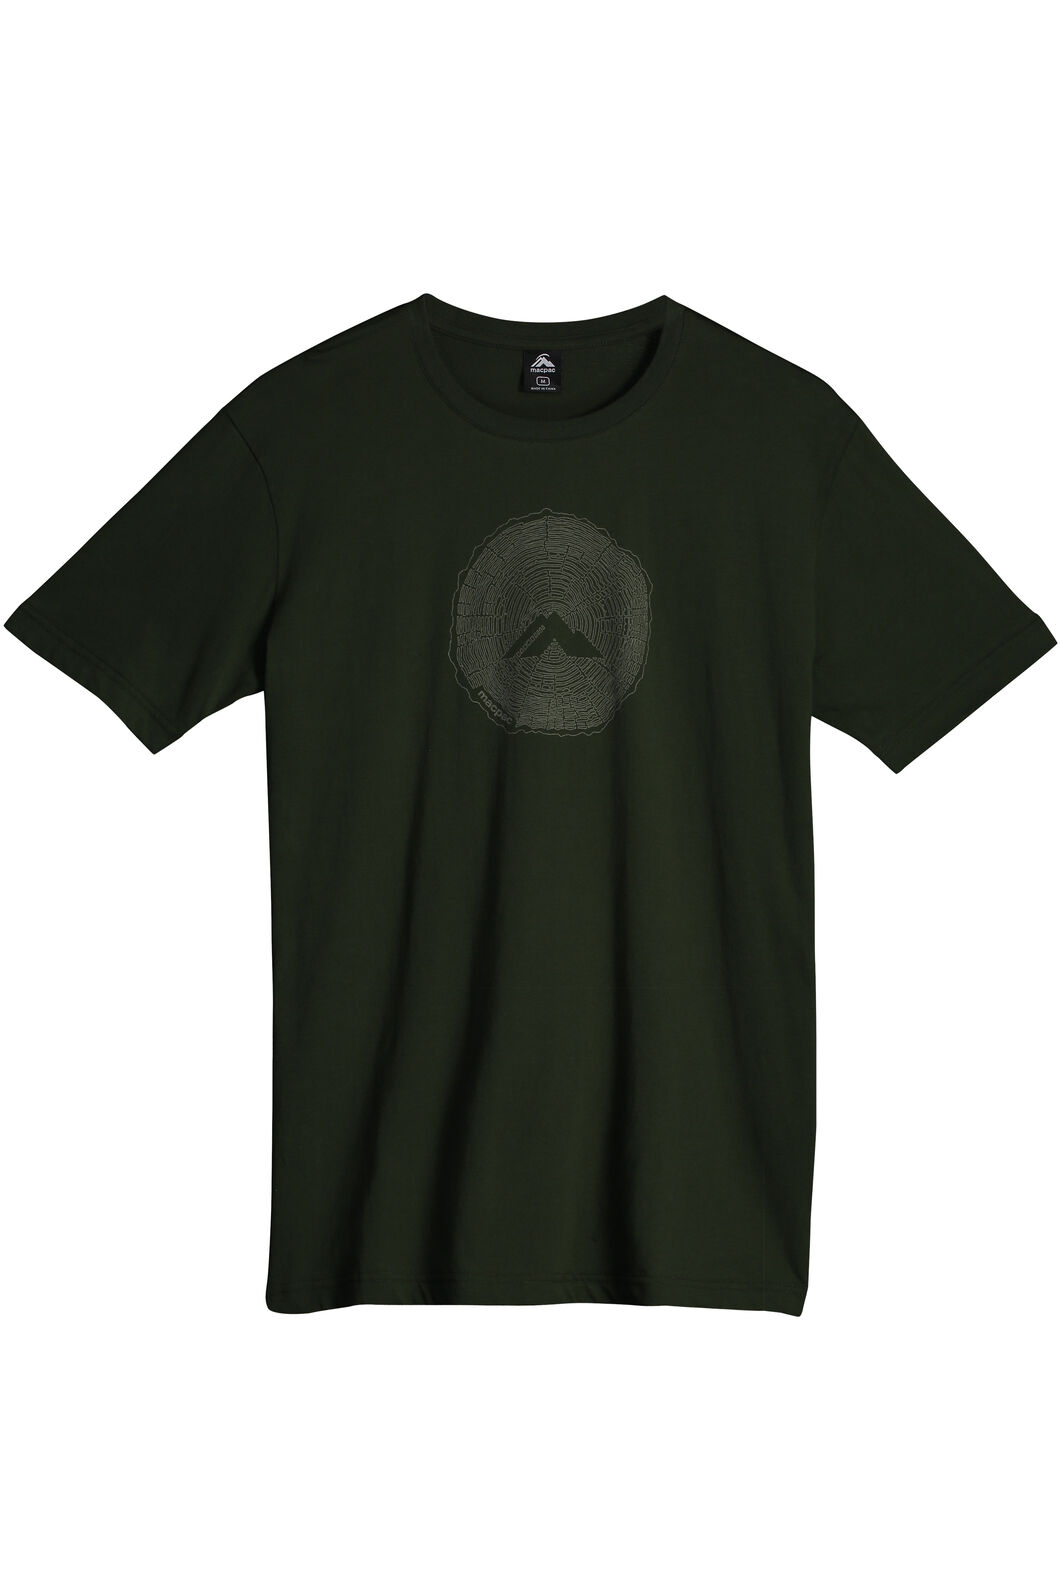 Sawcut Organic Cotton T-Shirt - Men's, Kombu Green, hi-res